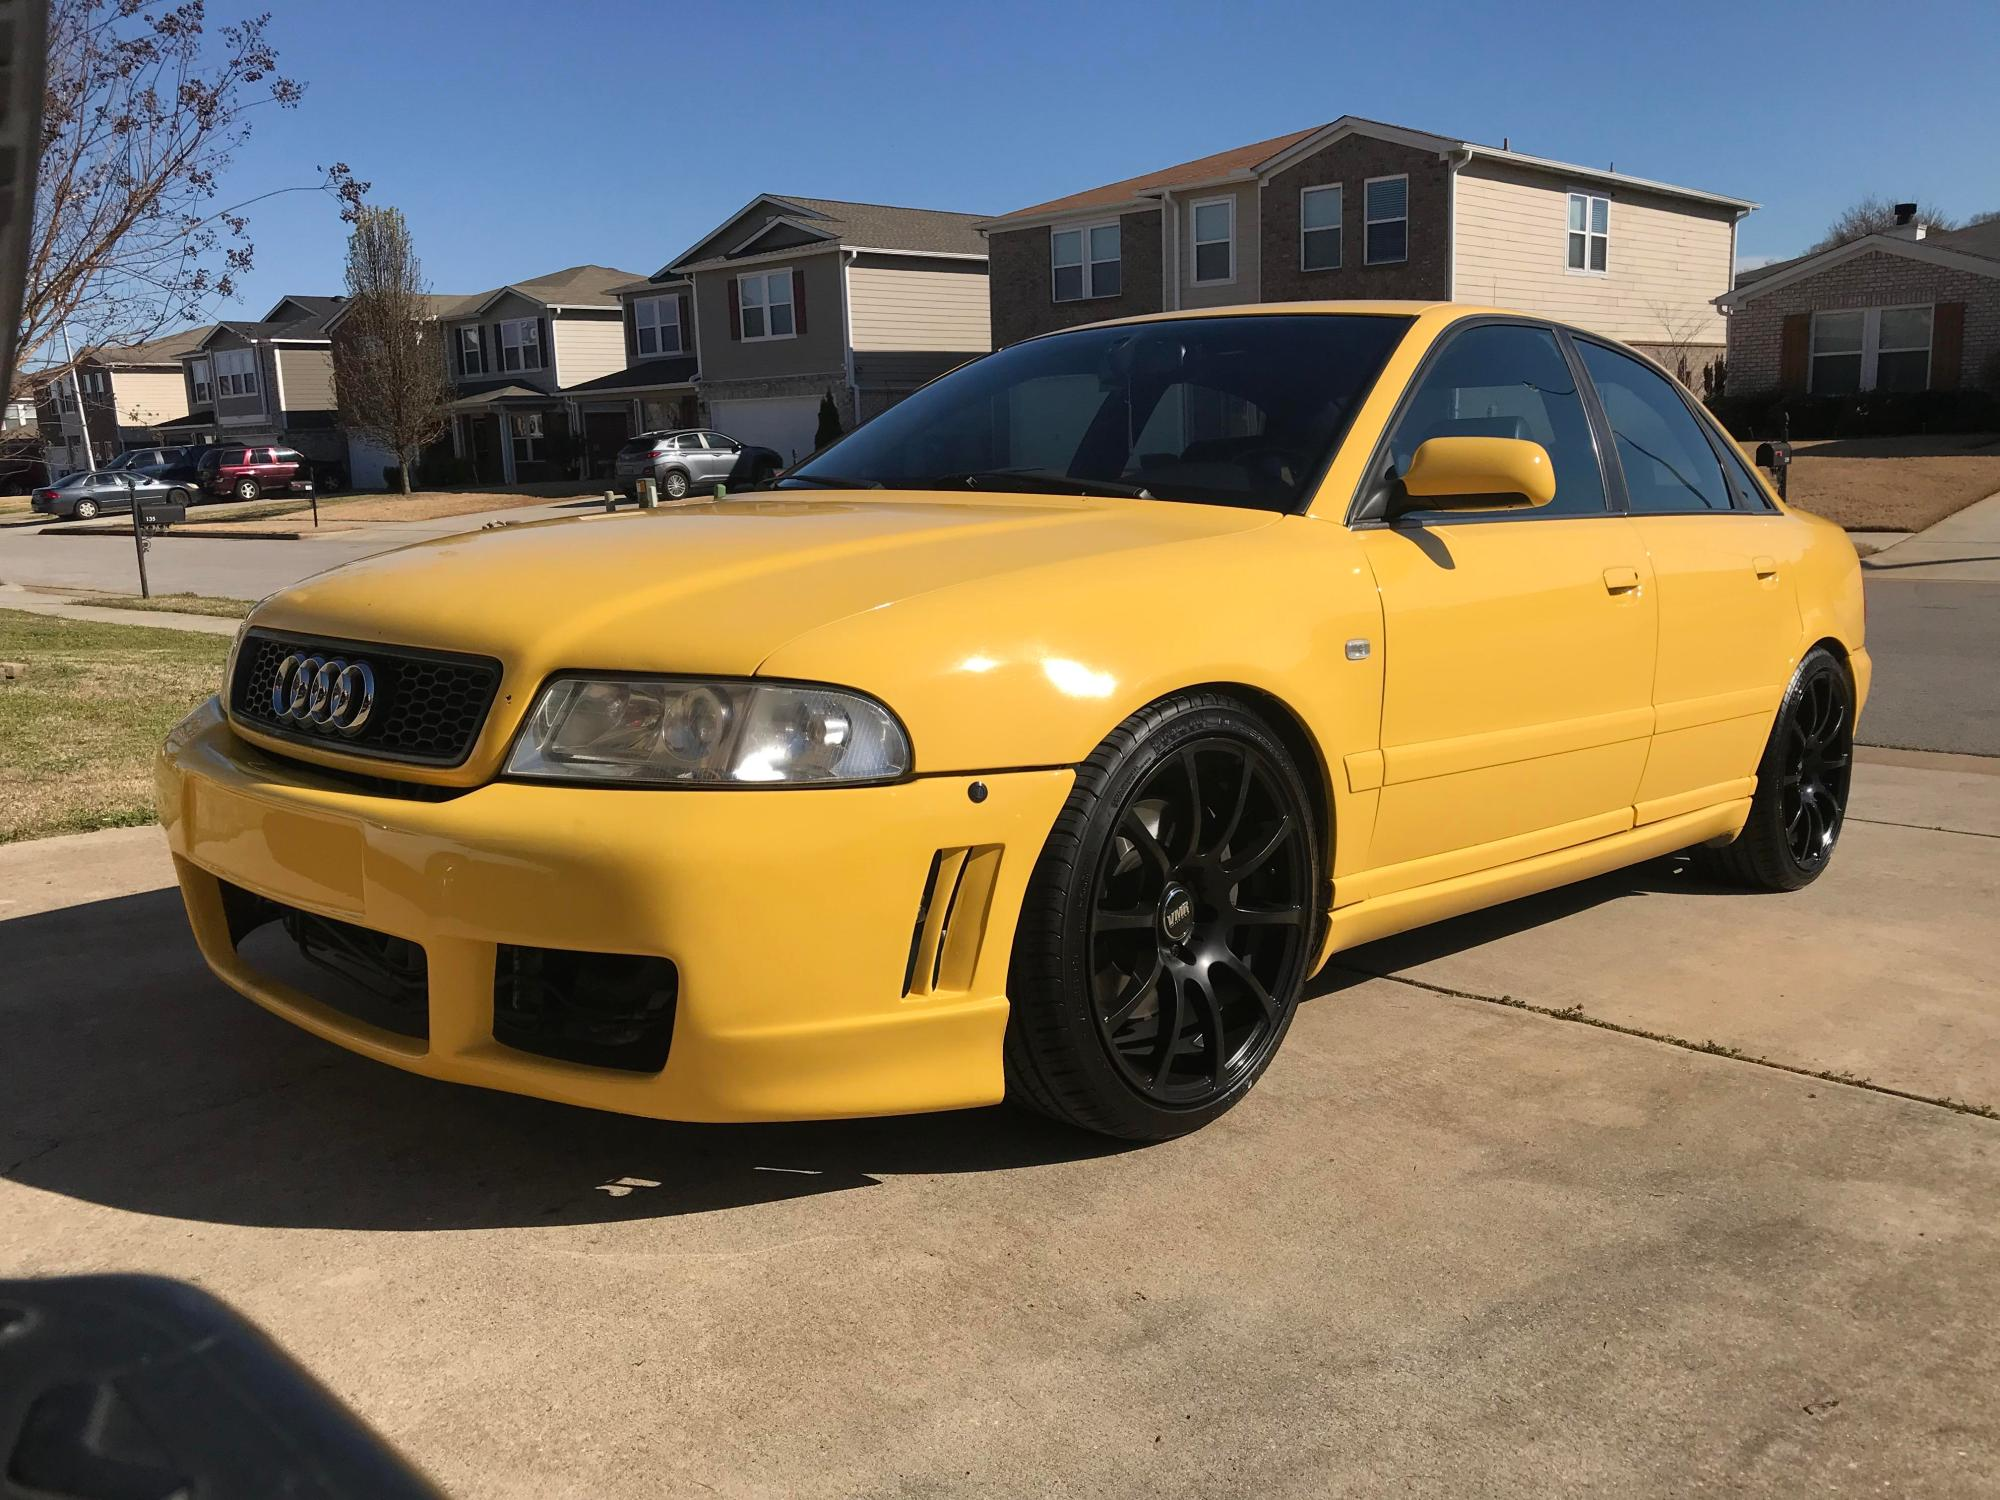 hight resolution of picked up my new project a week ago 2000 audi b5 s4 only 283 of these in imola yellow with a 6mt made in the states that year